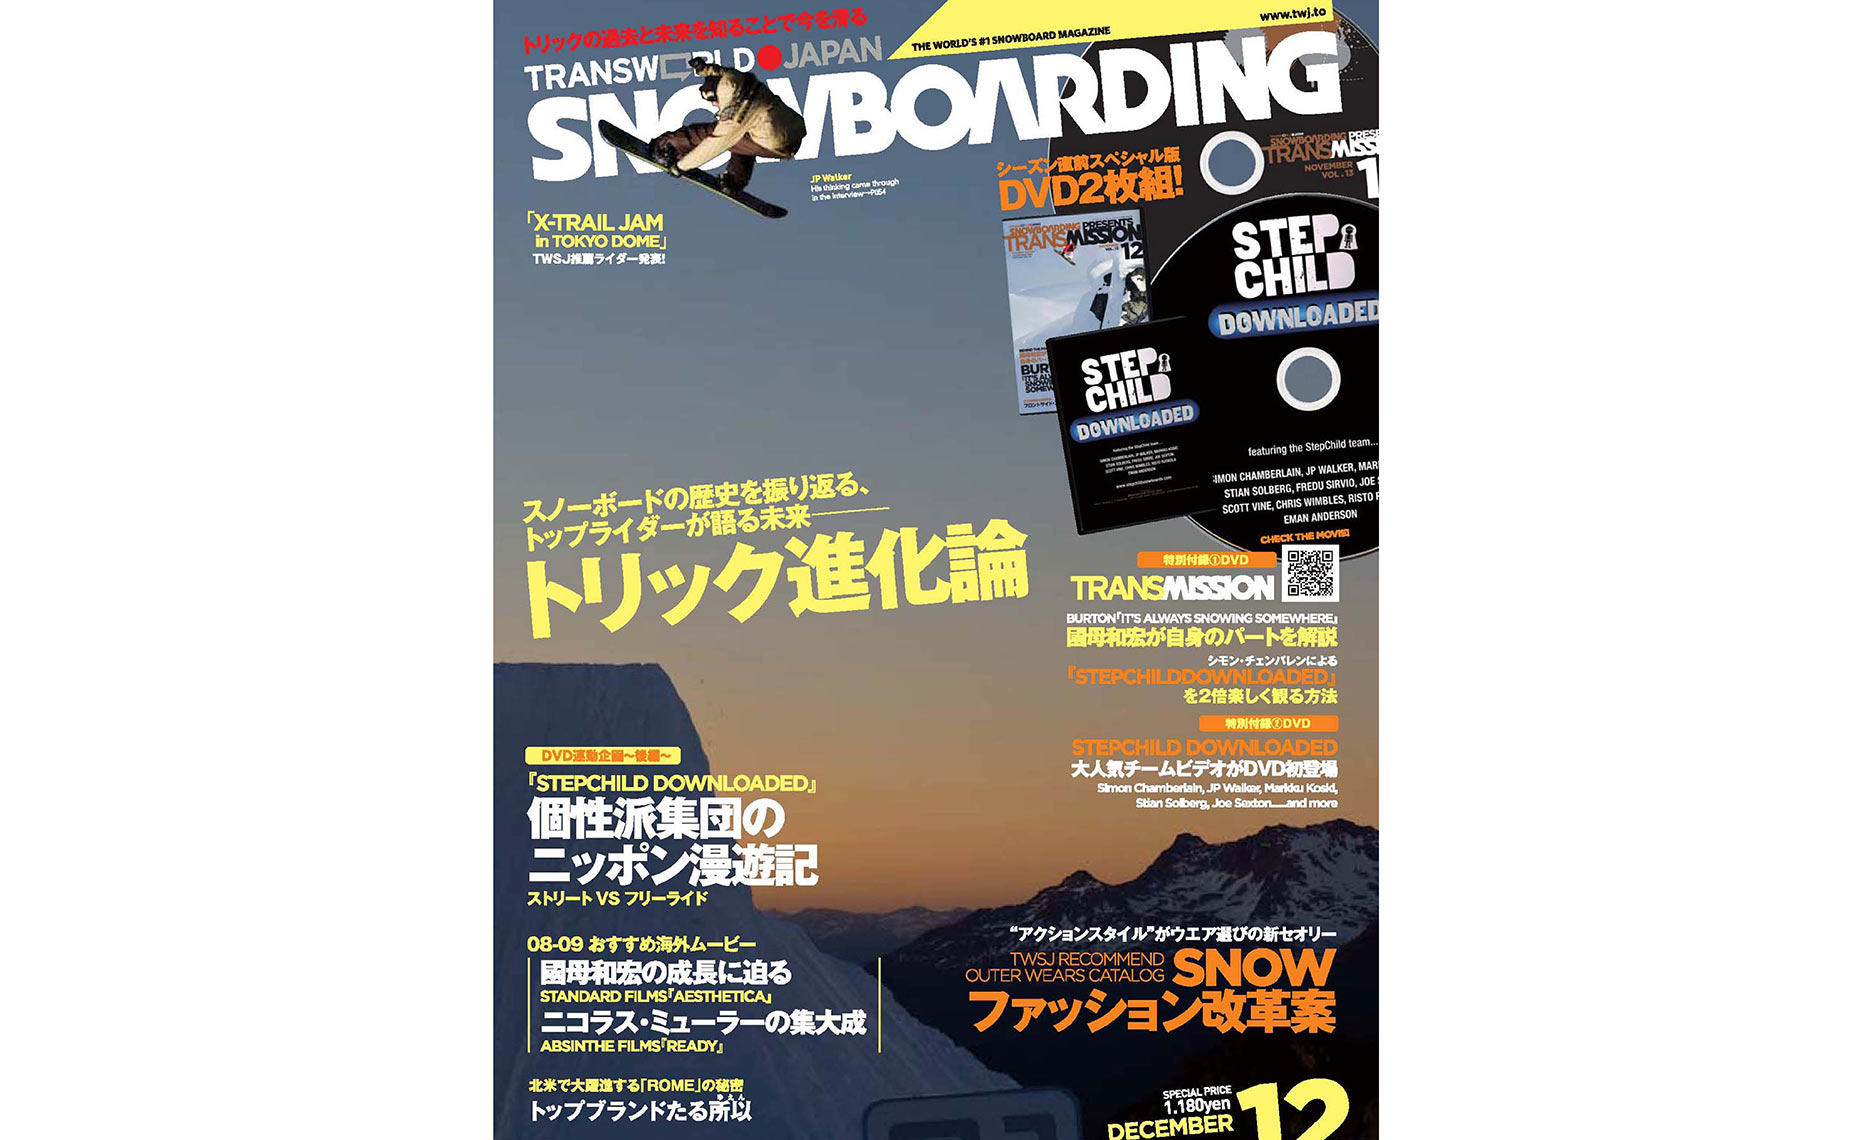 09-John-Jackson-TransWorld-SNOWboarding-Chris-Wellhausen